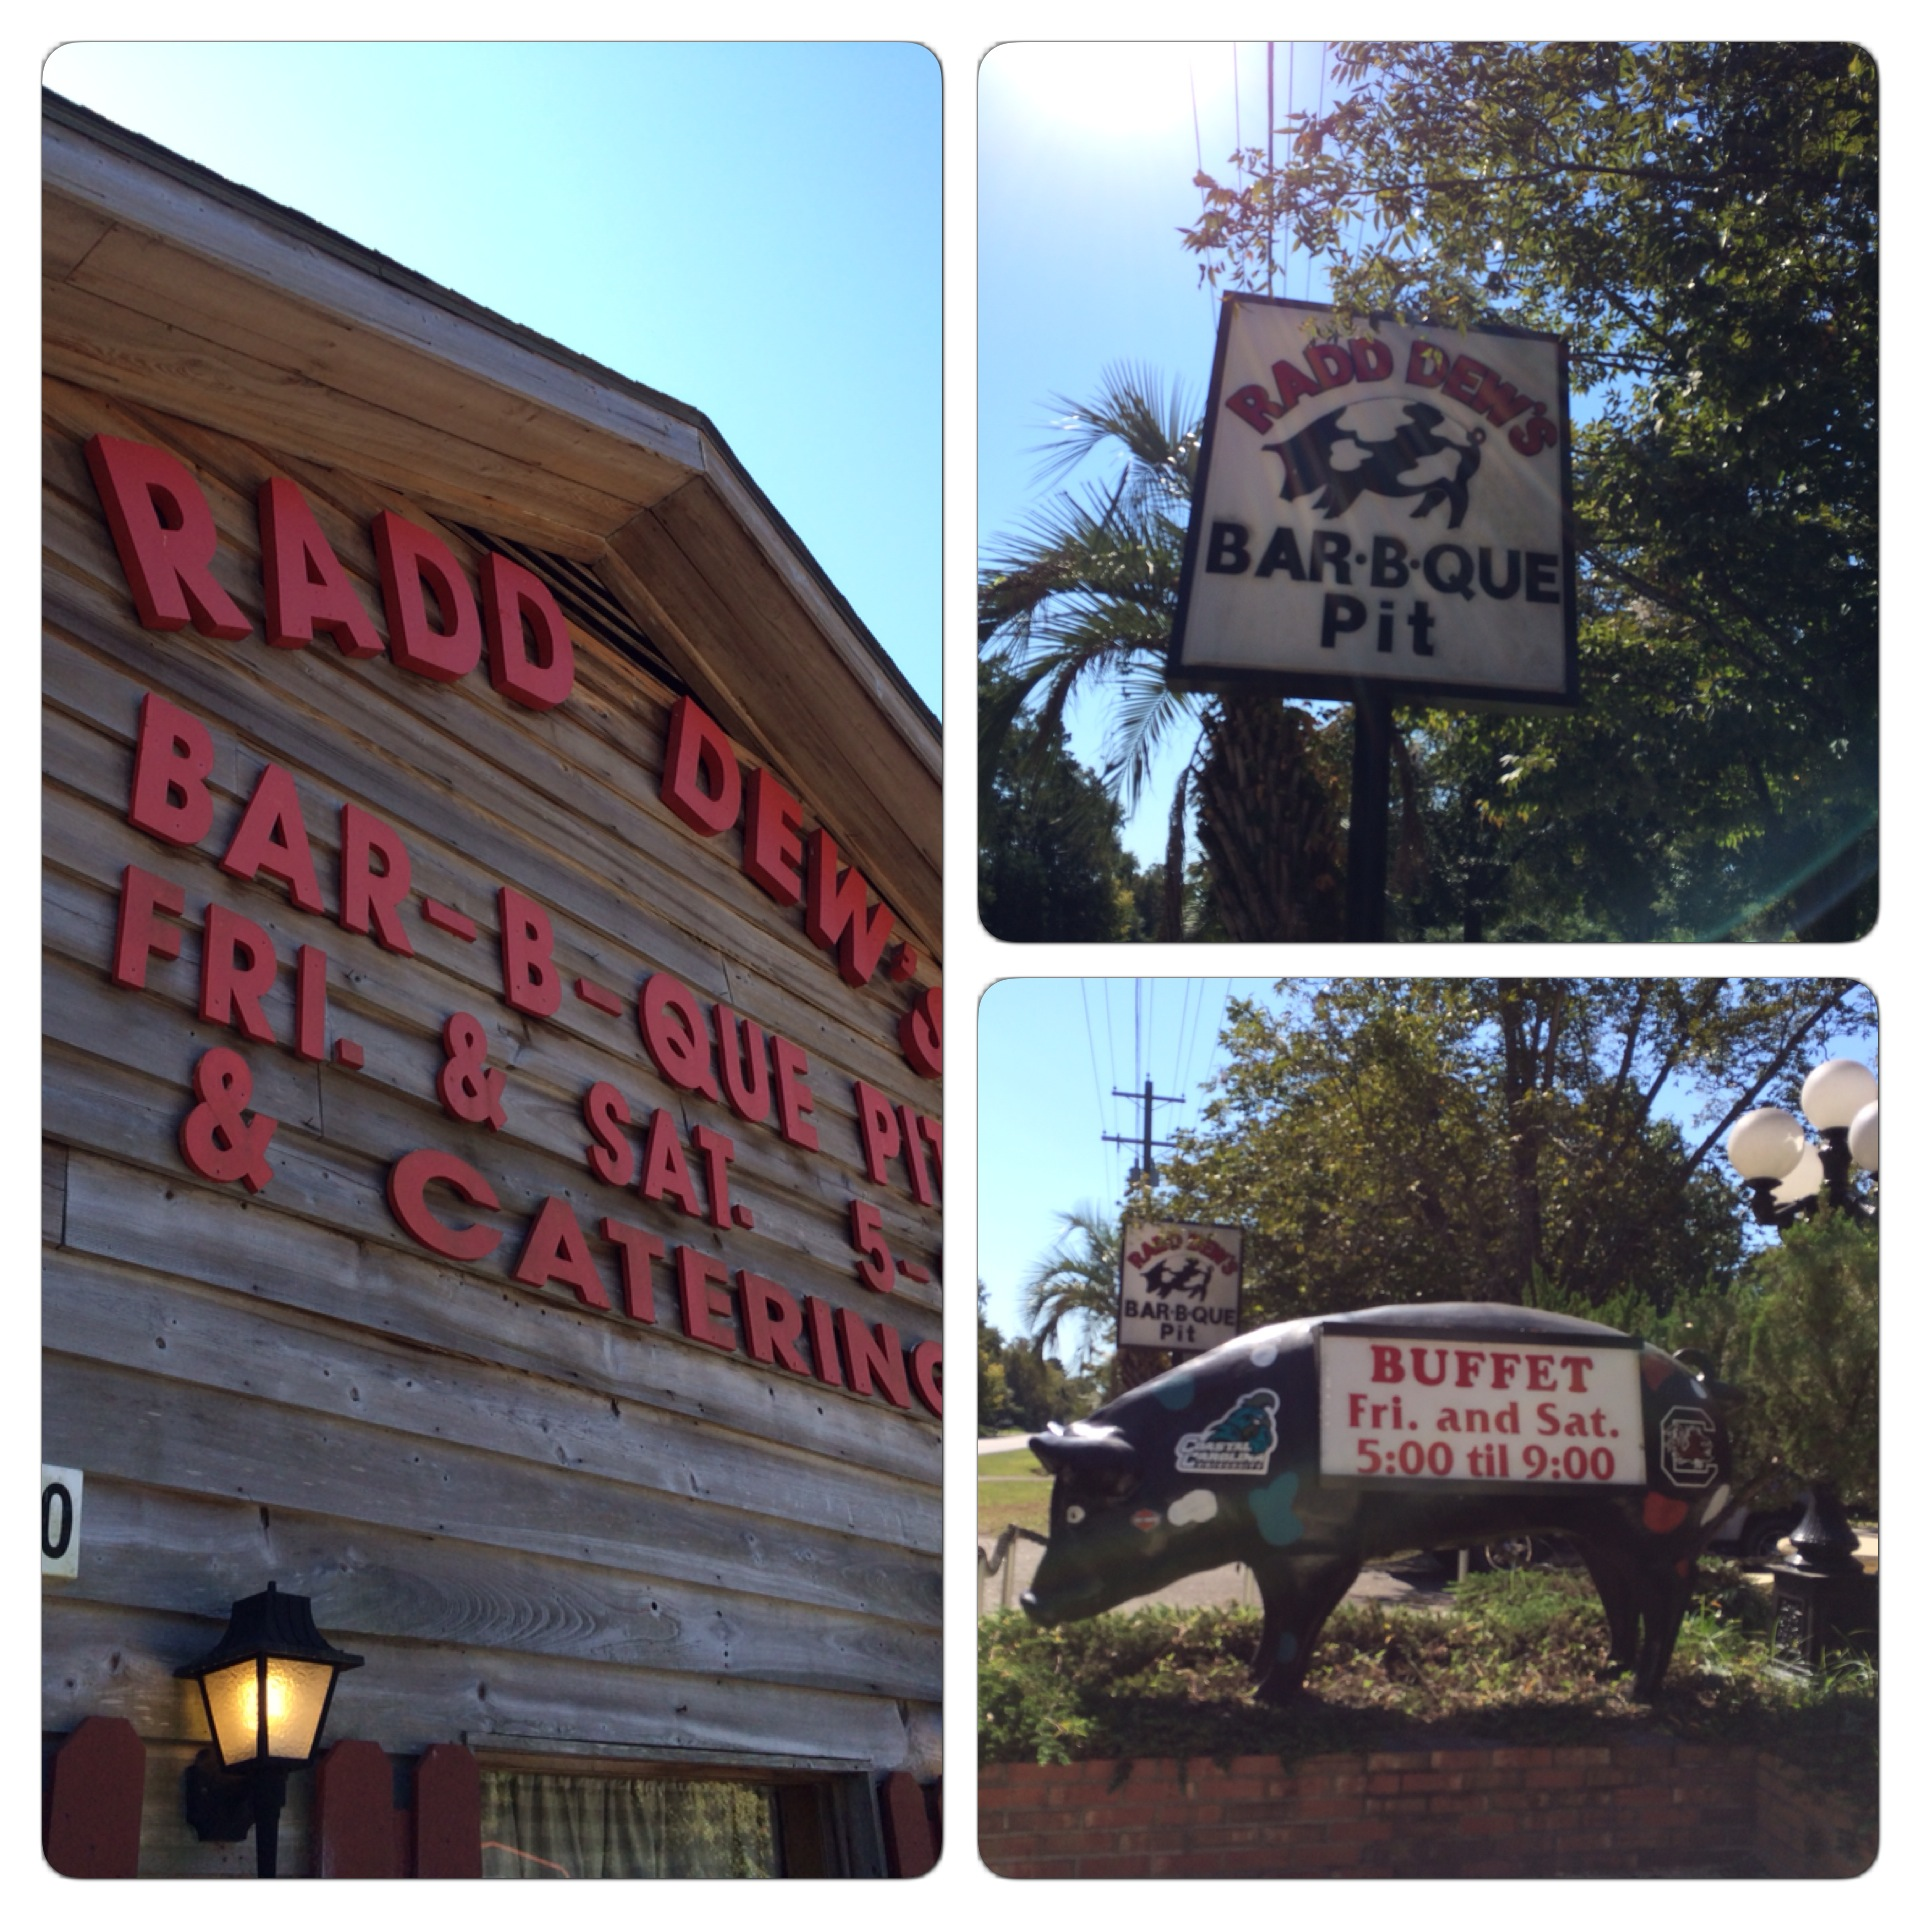 Welcome to Radd Dew's Bar-B-Que Pit!